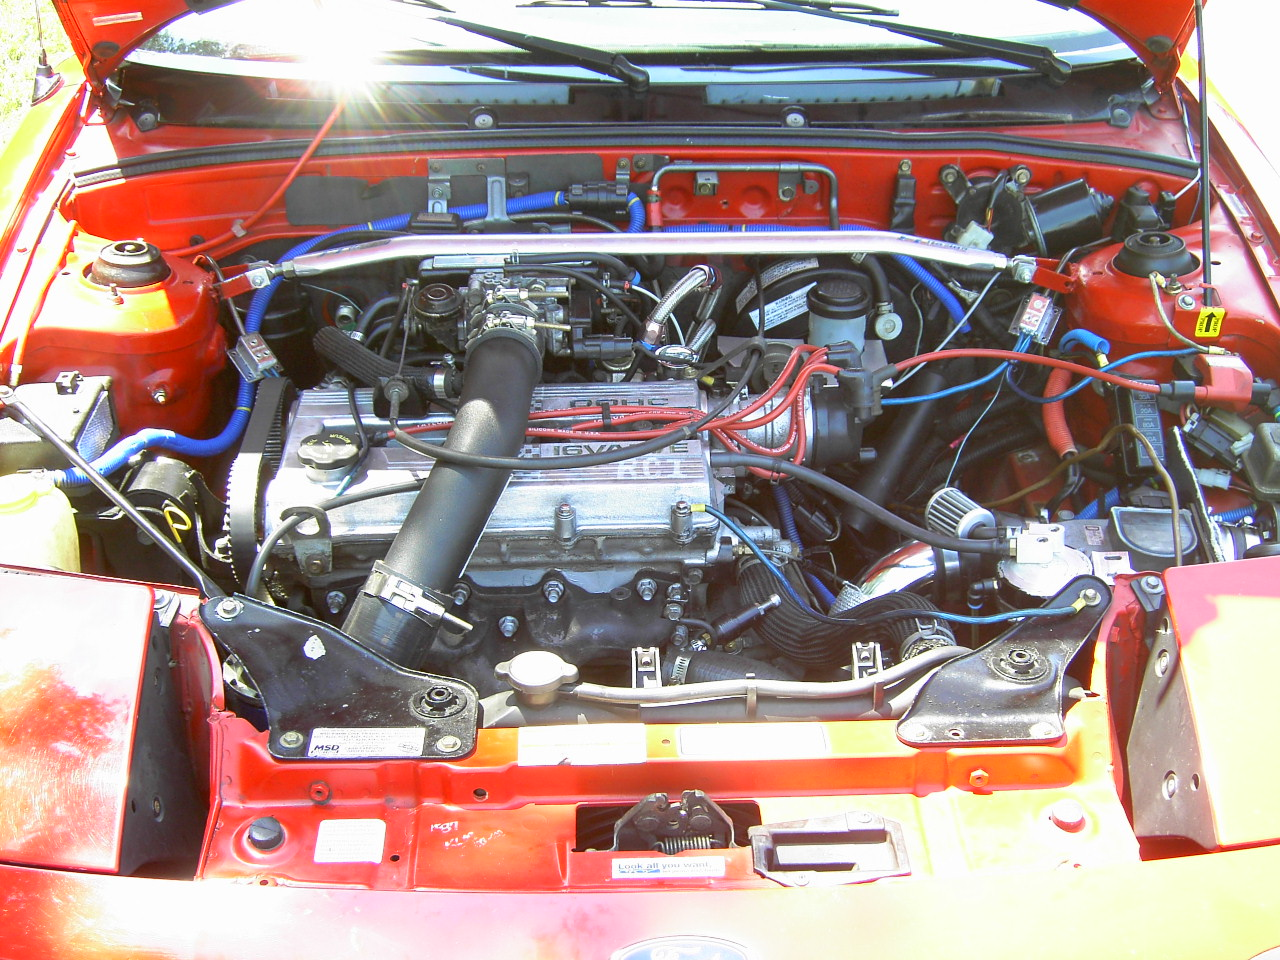 1991 Mercury Capri 2 Dr XR2 Turbo Convertible picture, engine